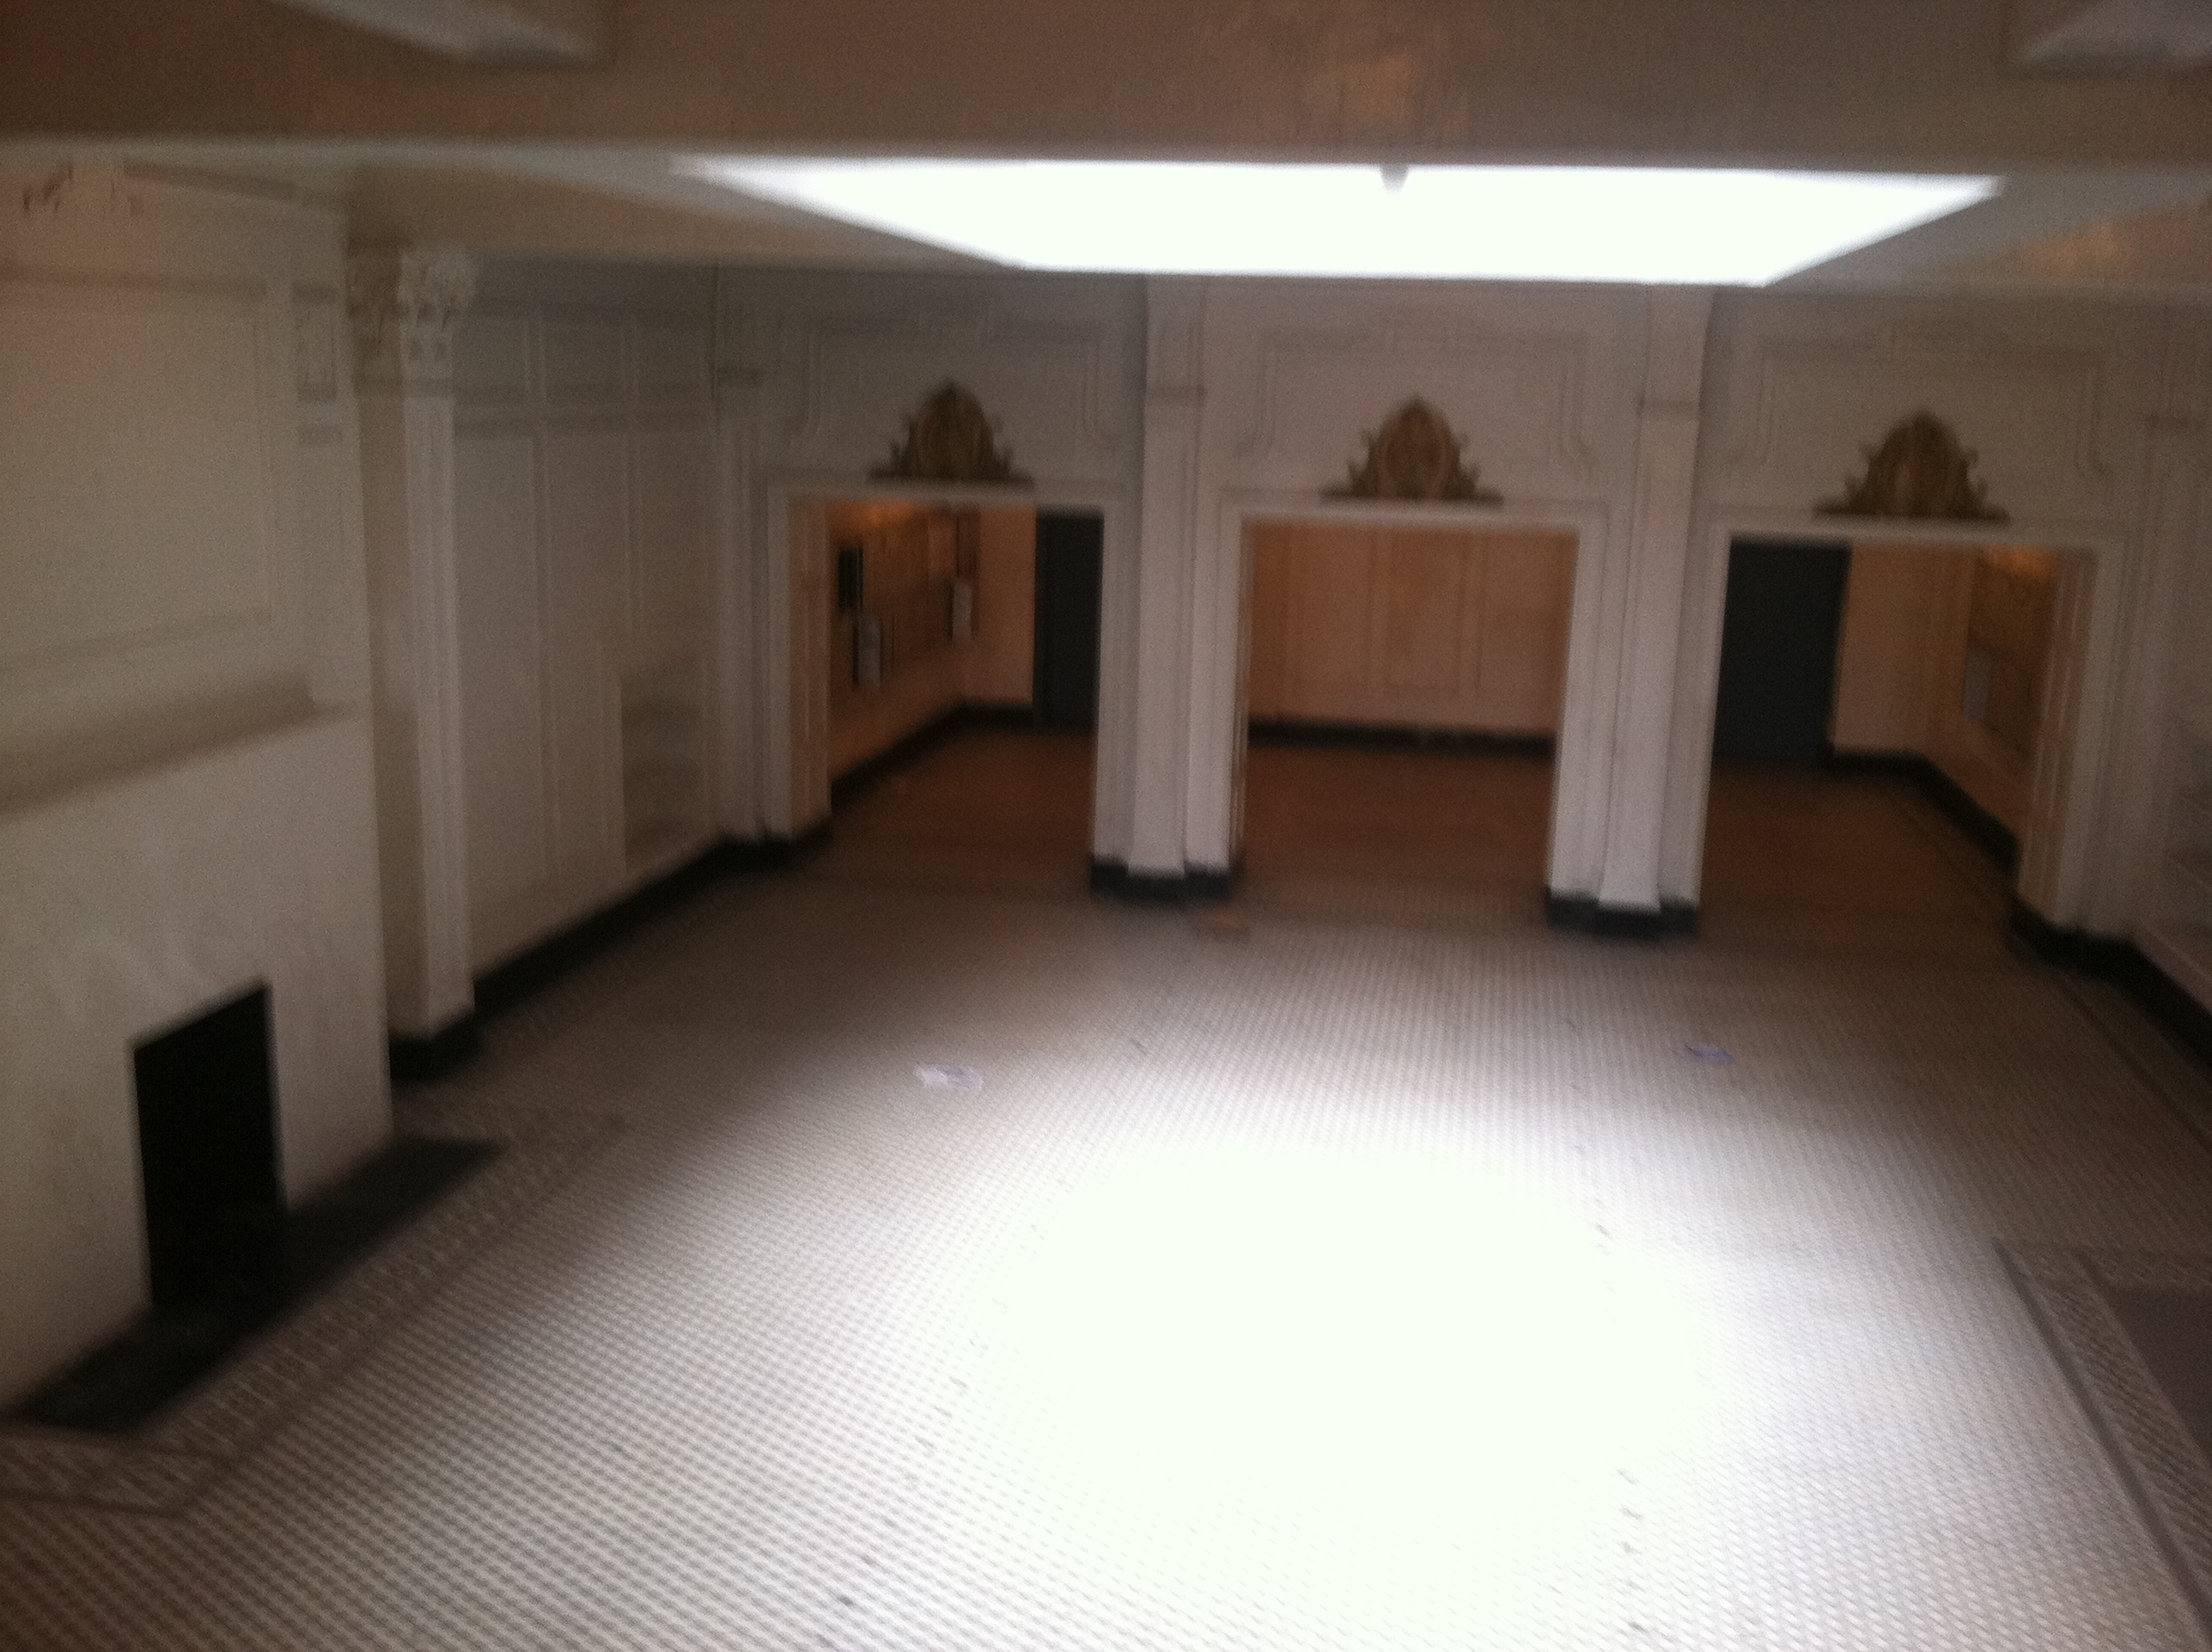 The Colony Arms lobby where DPD set up a HQ during the raid.